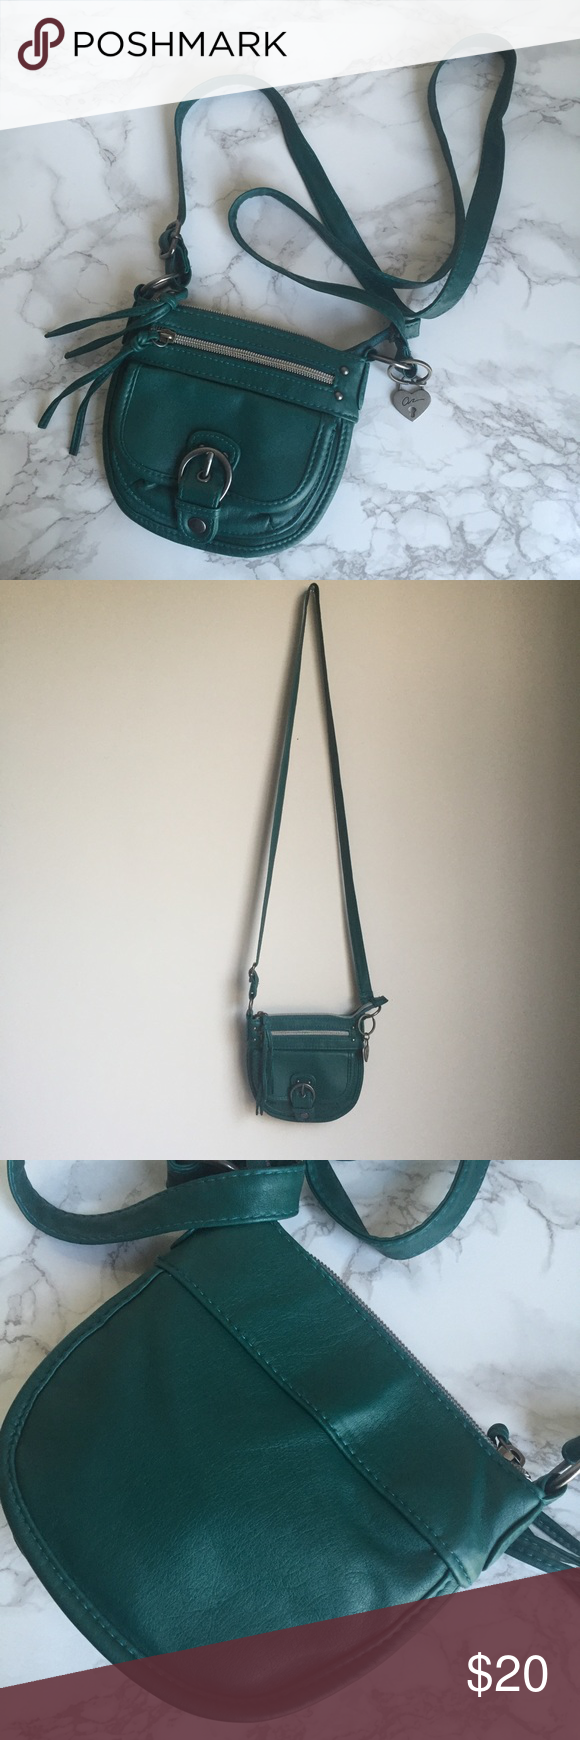 American Rag Turquoise Crossbody Purse Adorable Mini Bag Excellent Condition Bags